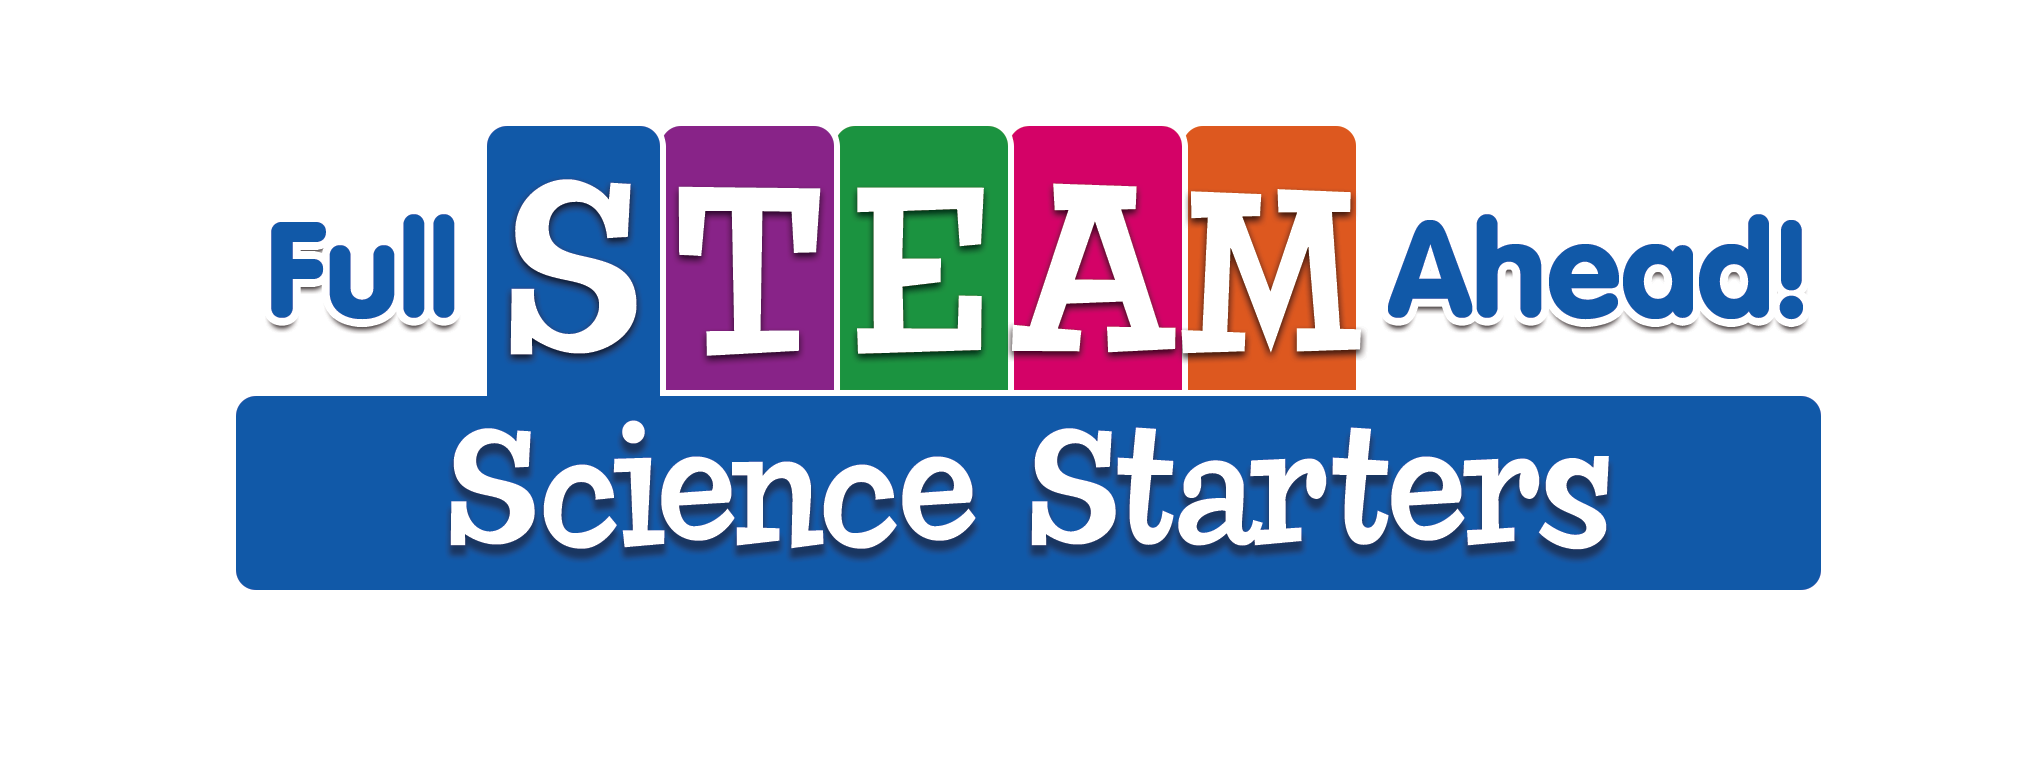 Full-STEAM-Ahead_science_LOGO